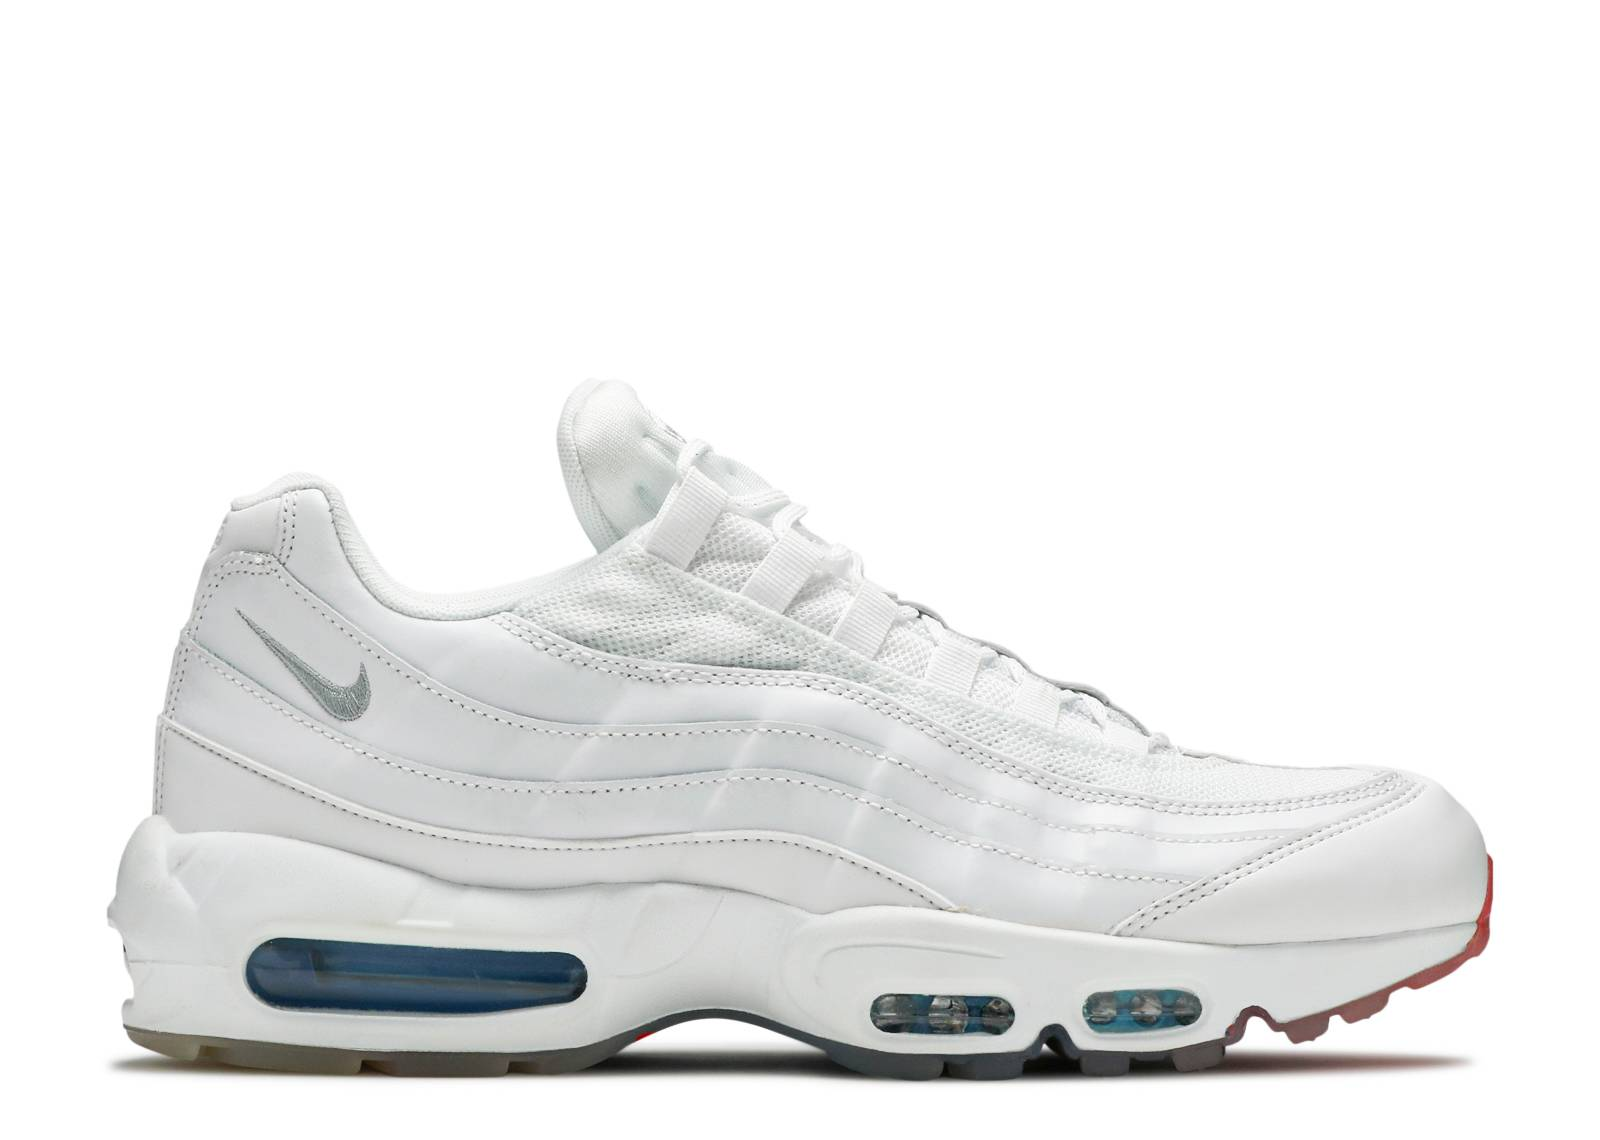 897845945e Nike Air Max 95 - Nike - AQ7981 100 - white/photo blue-glacier blue ...